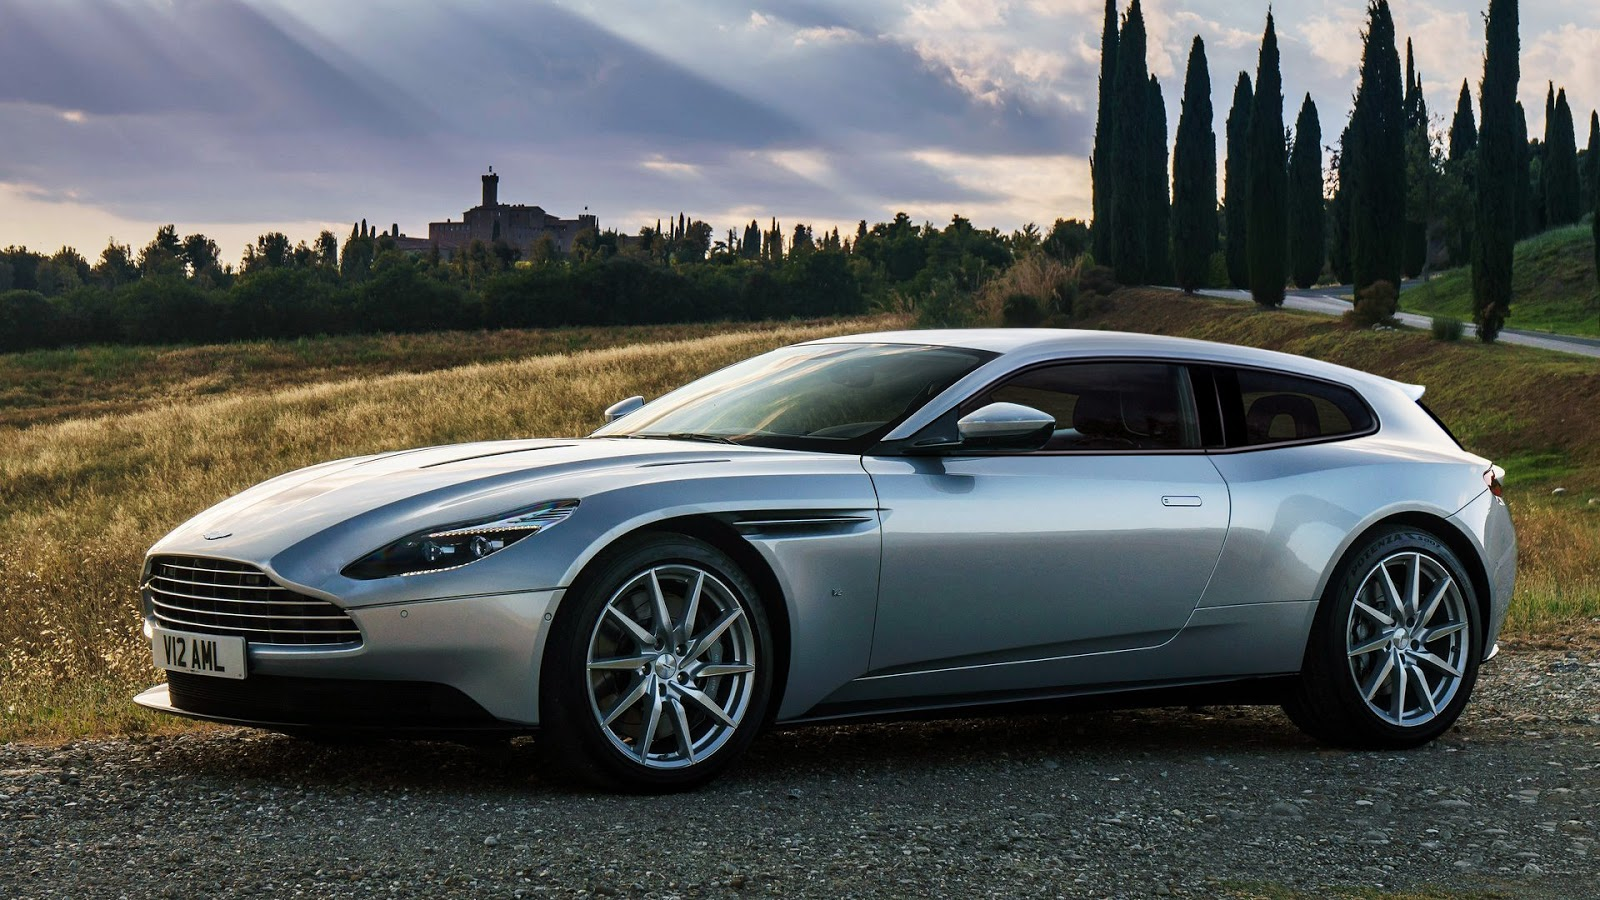 aston martin db11 shooting brake rendering makes sense autoevolution. Black Bedroom Furniture Sets. Home Design Ideas